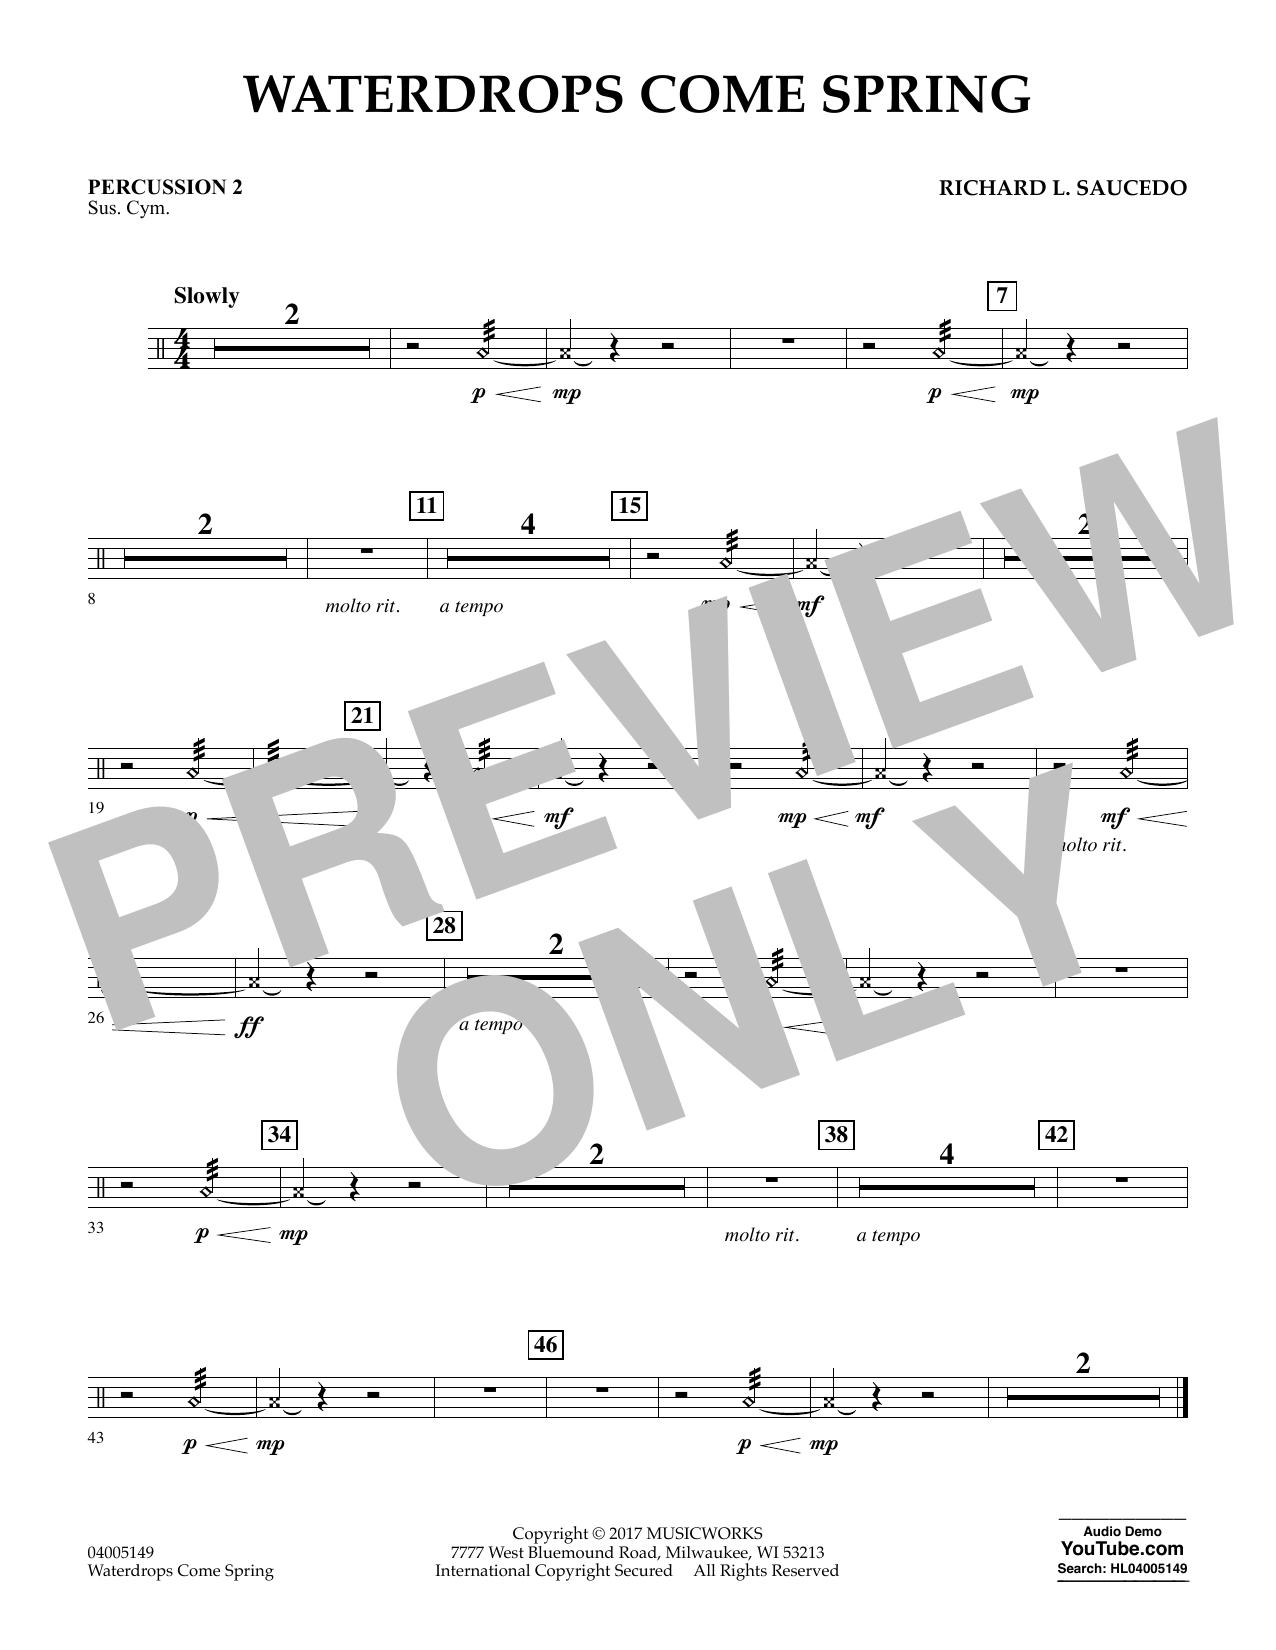 Waterdrops Come Spring - Percussion 2 Sheet Music